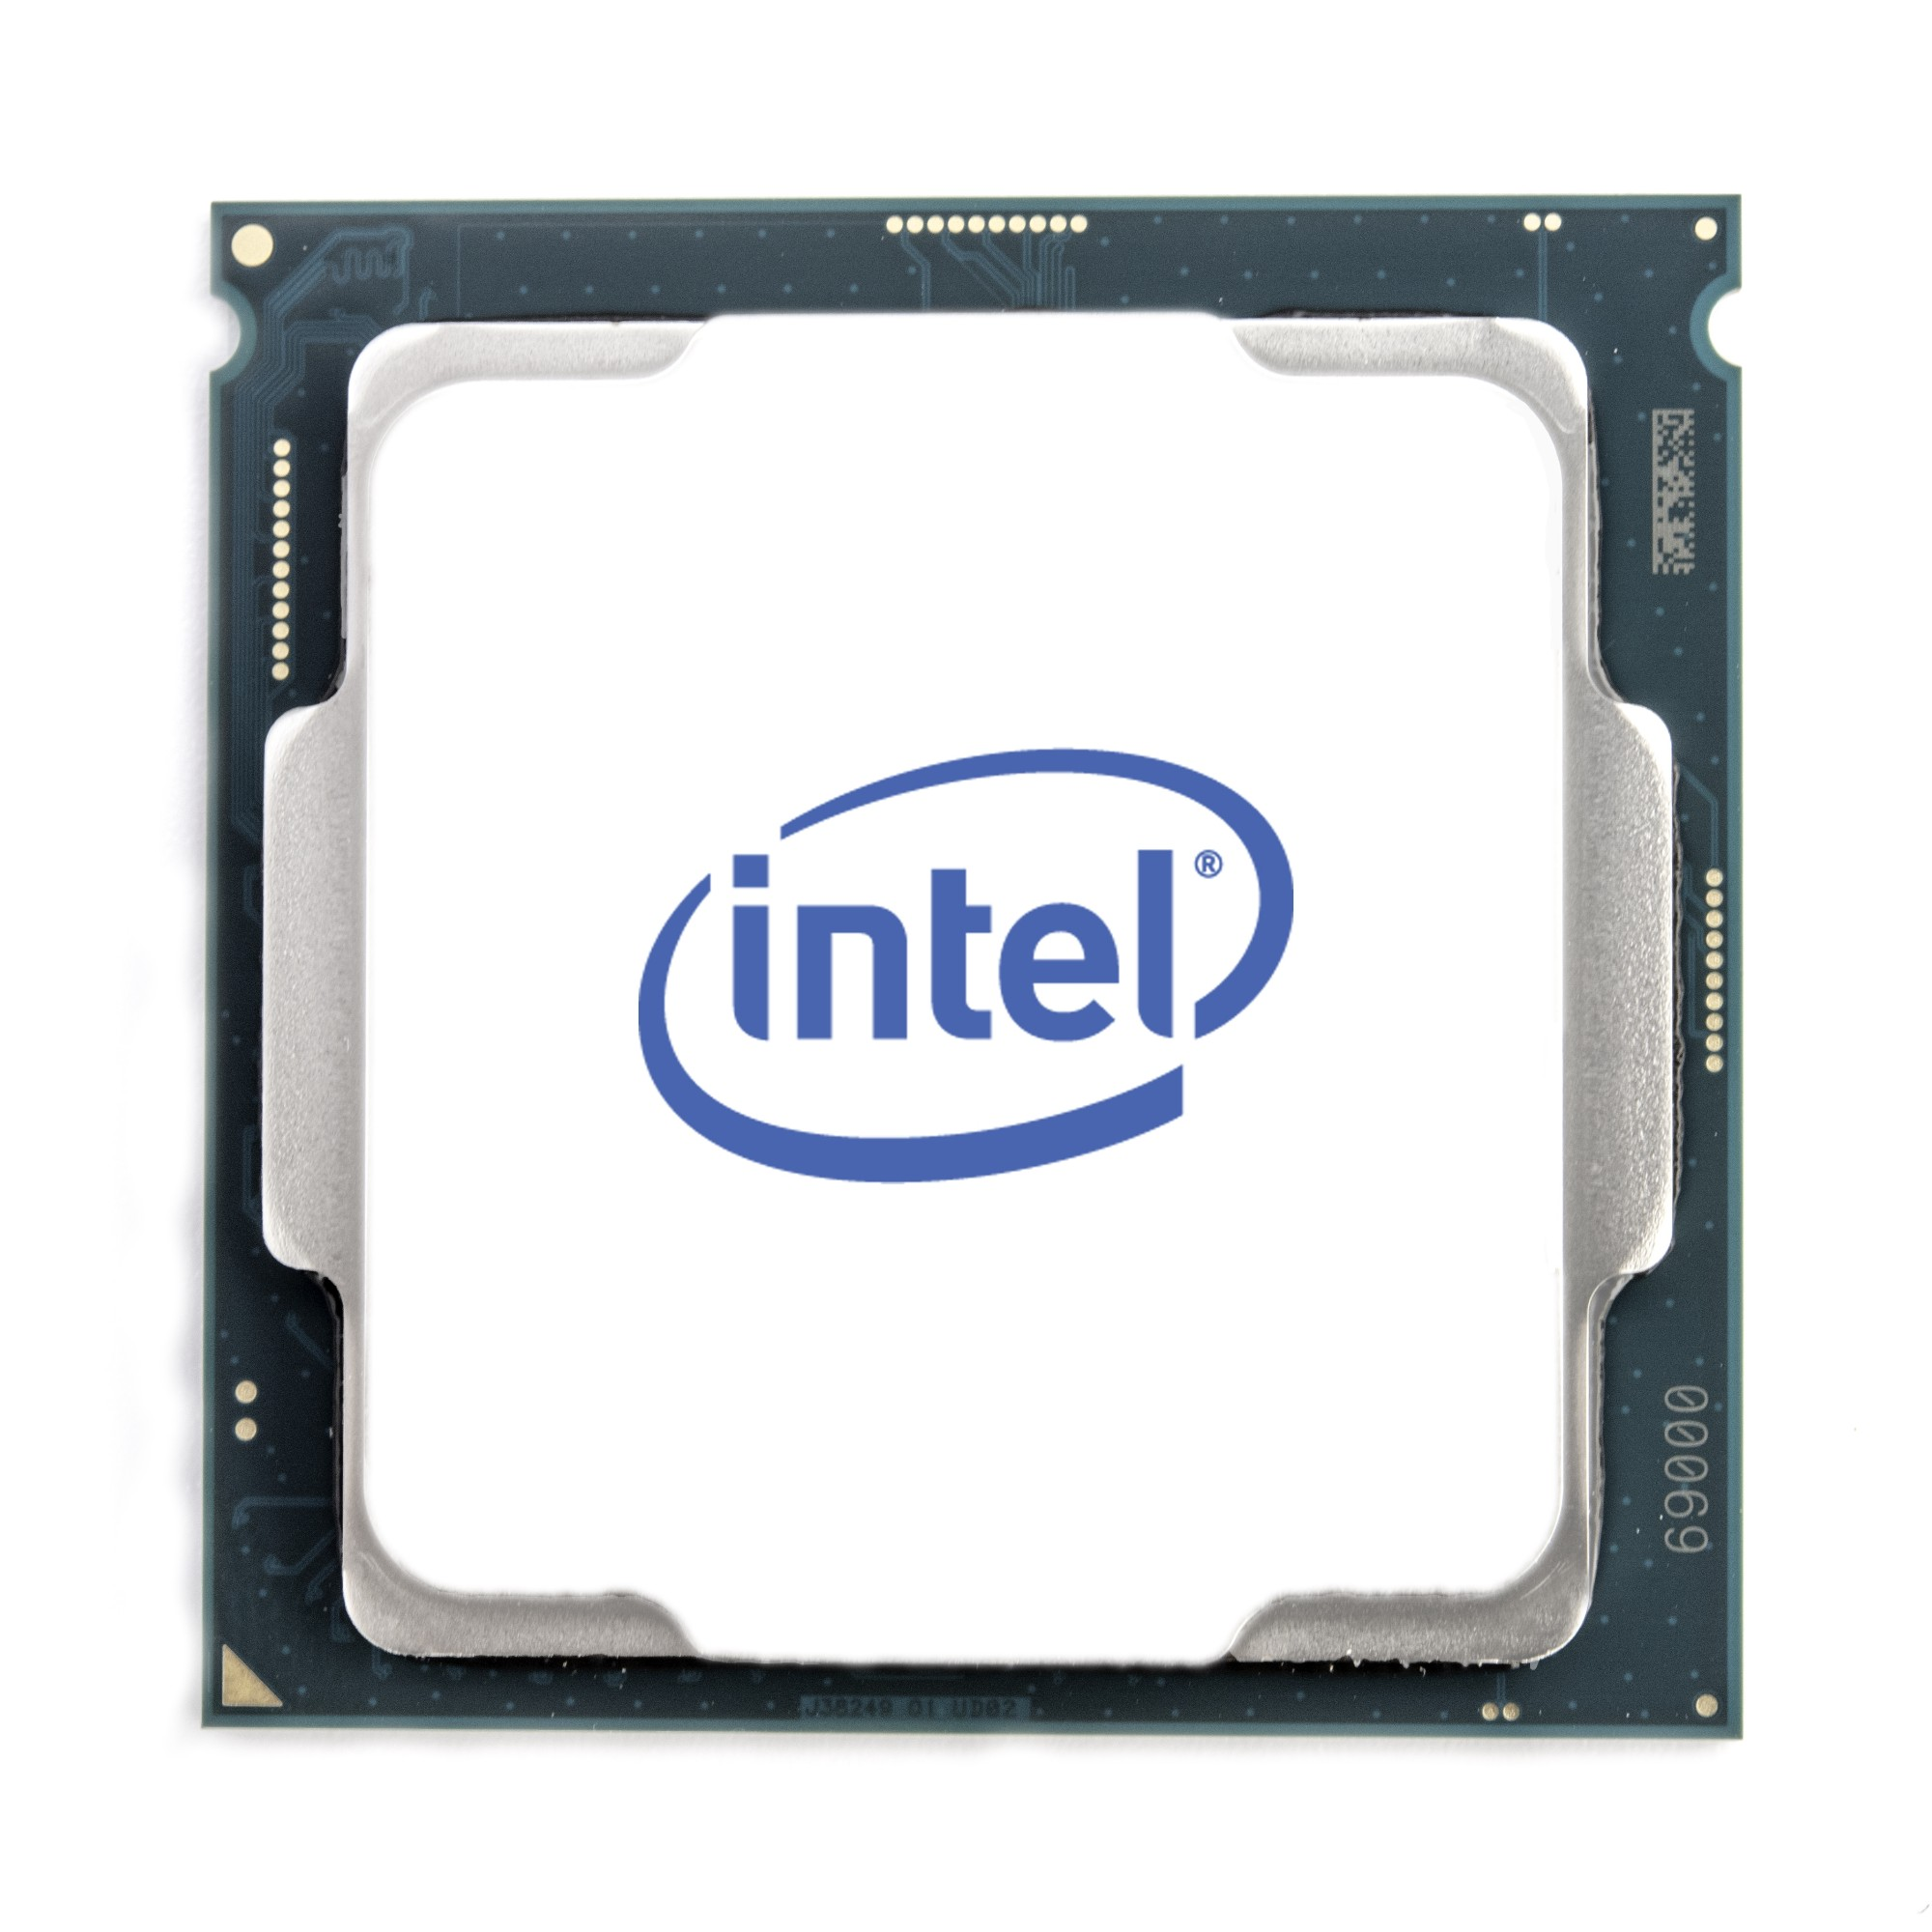 Intel Xeon W-2255 processor 3.7 GHz 19.25 MB